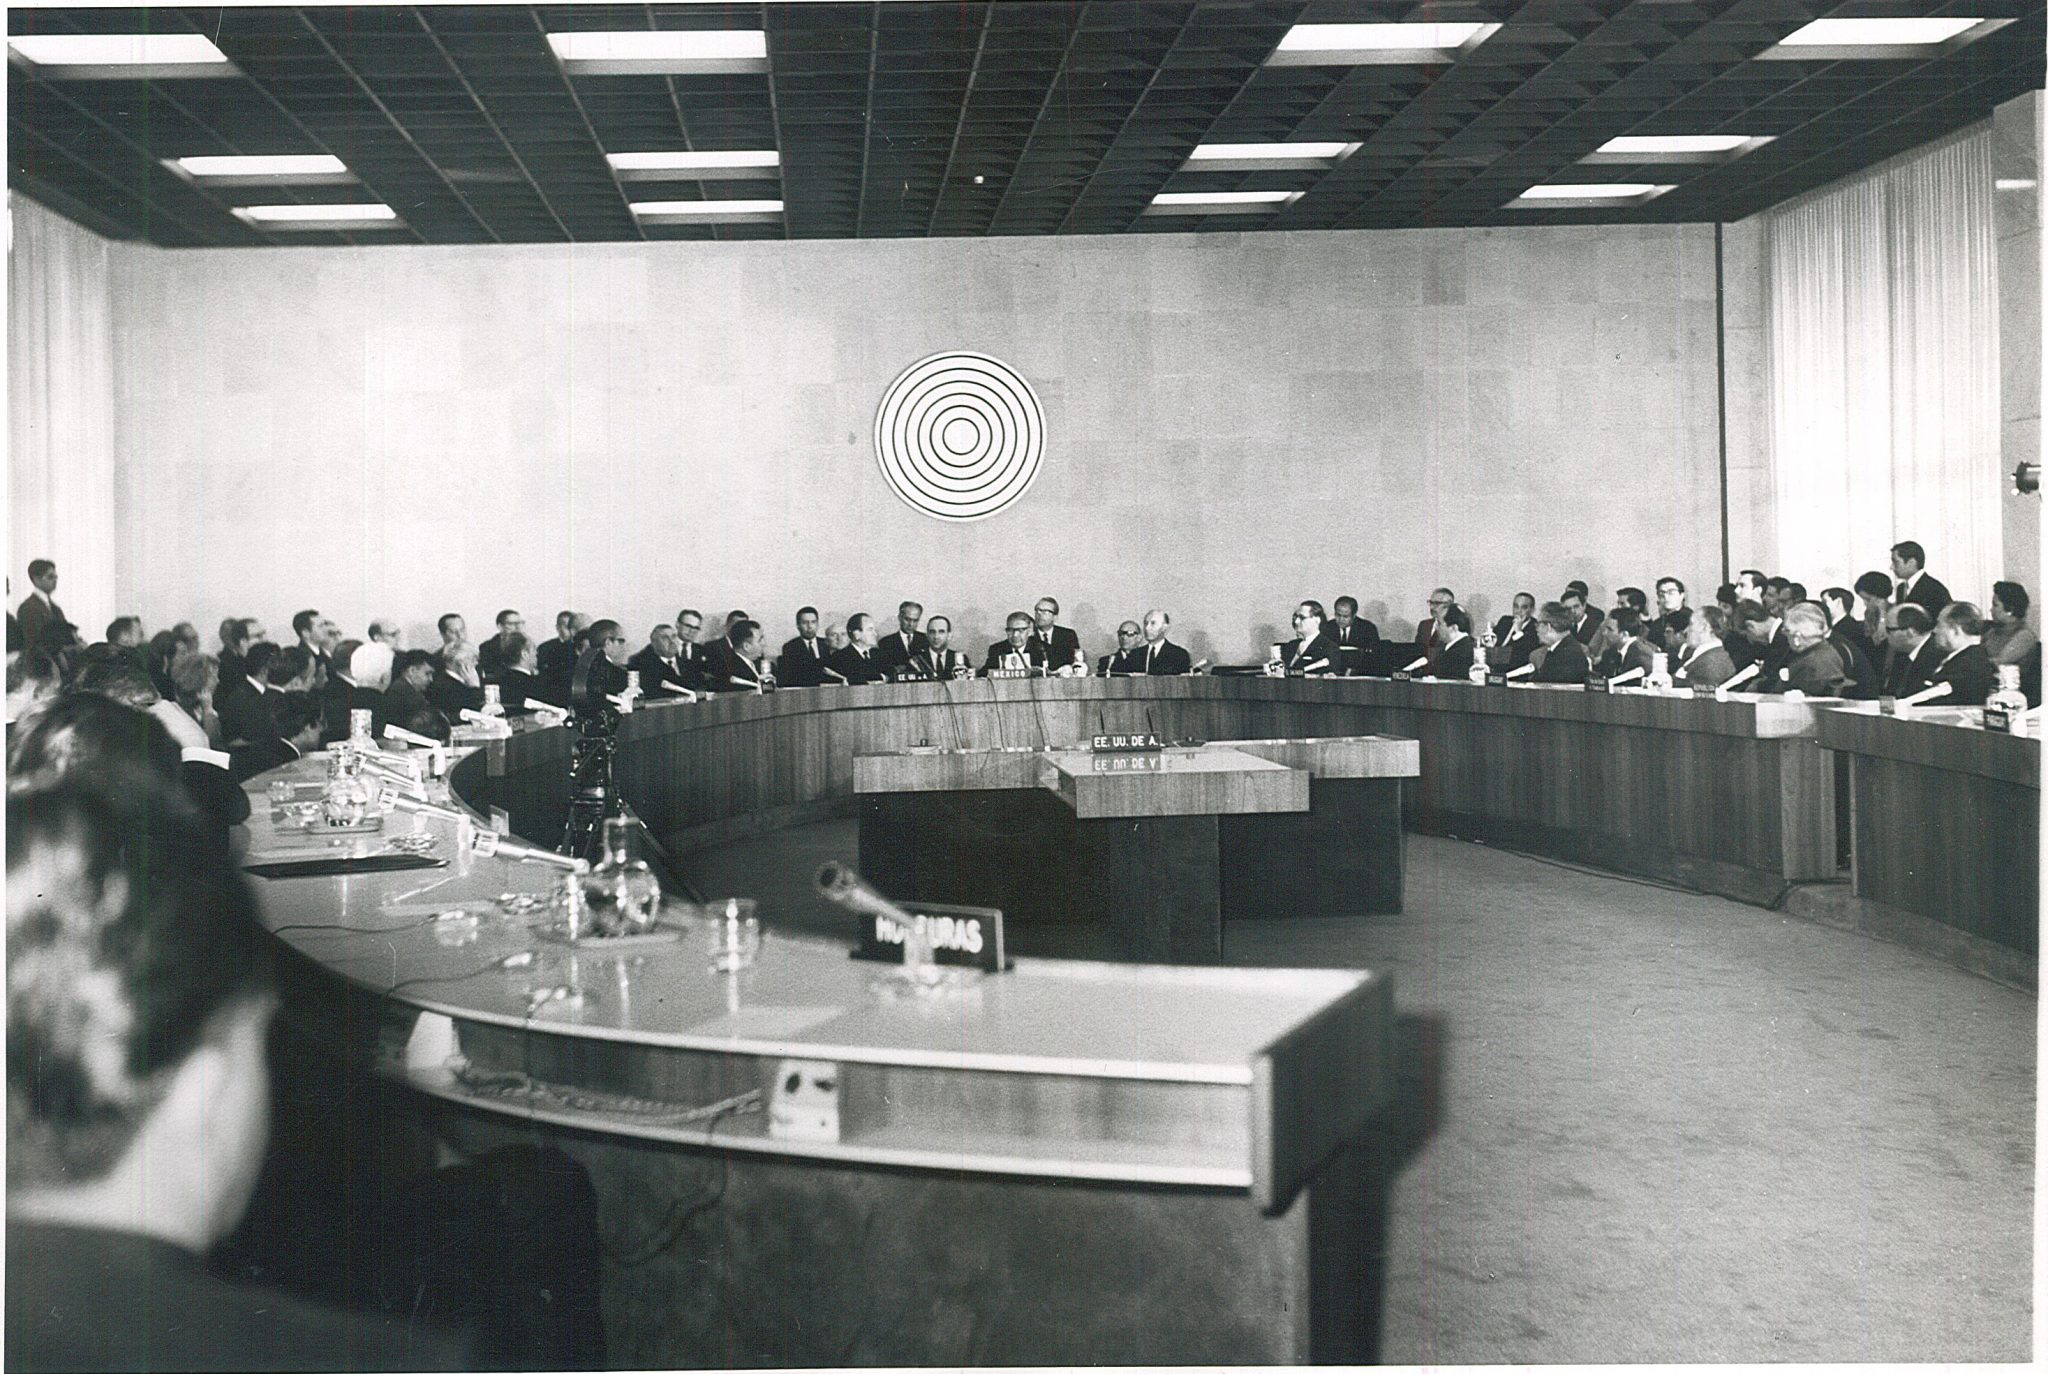 Preliminary Meeting for the Constitution of the Agency for the Prohibition of Nuclear Weapons in Latin America, held in Mexico City in 1969.